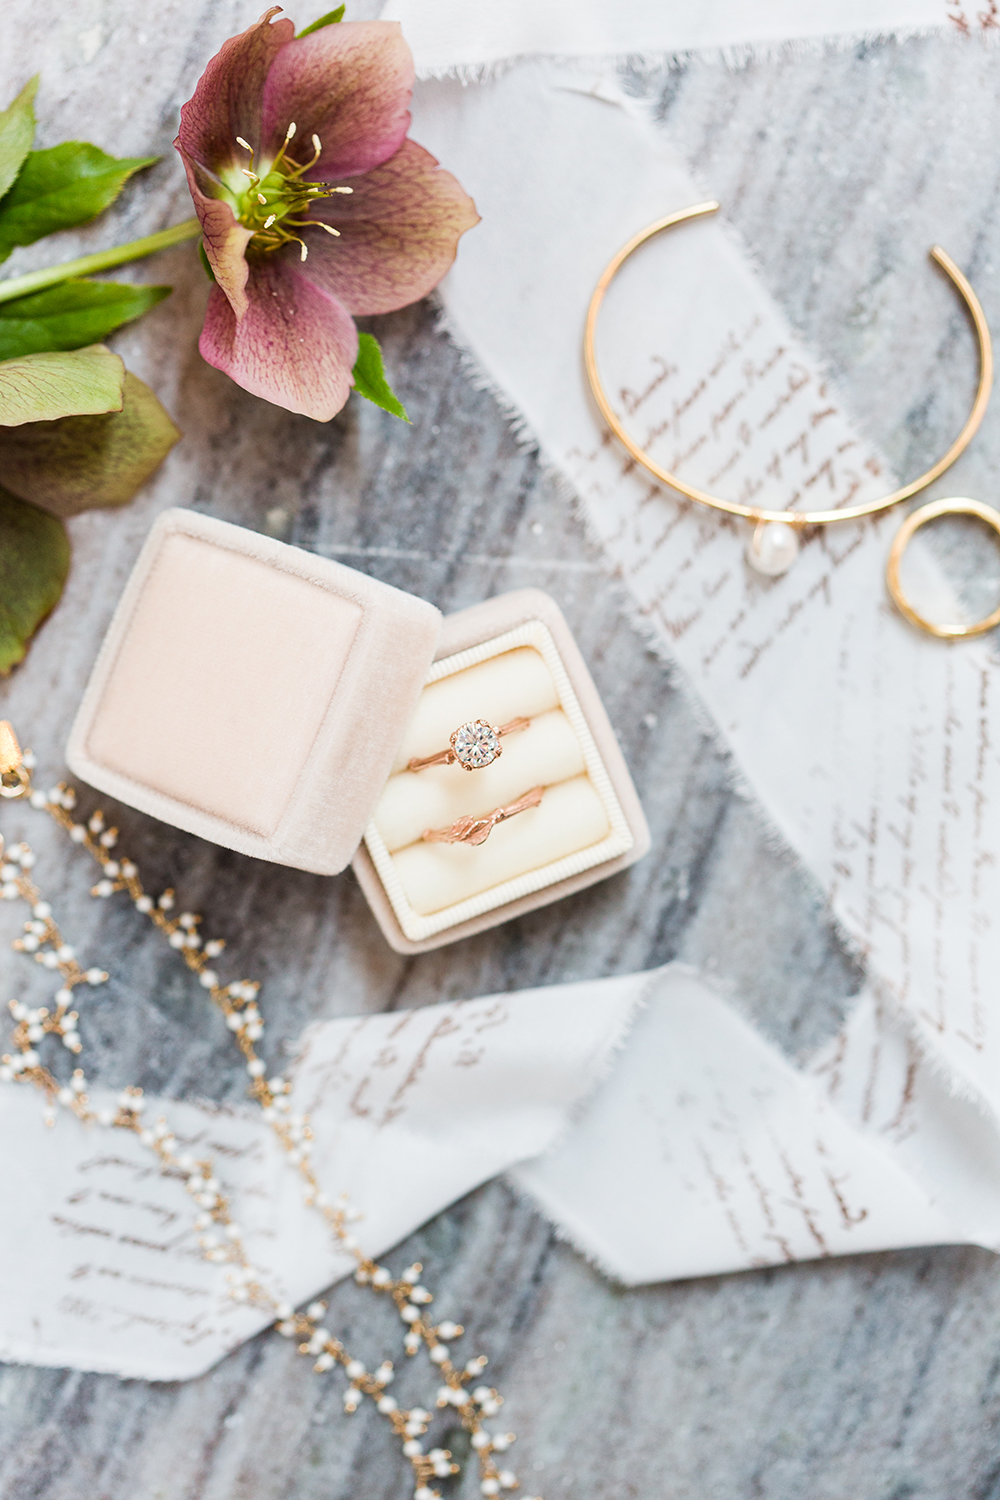 wedding jewelry - photo by Lauren Lee Photography http://ruffledblog.com/modern-grecian-inspired-wedding-ideas